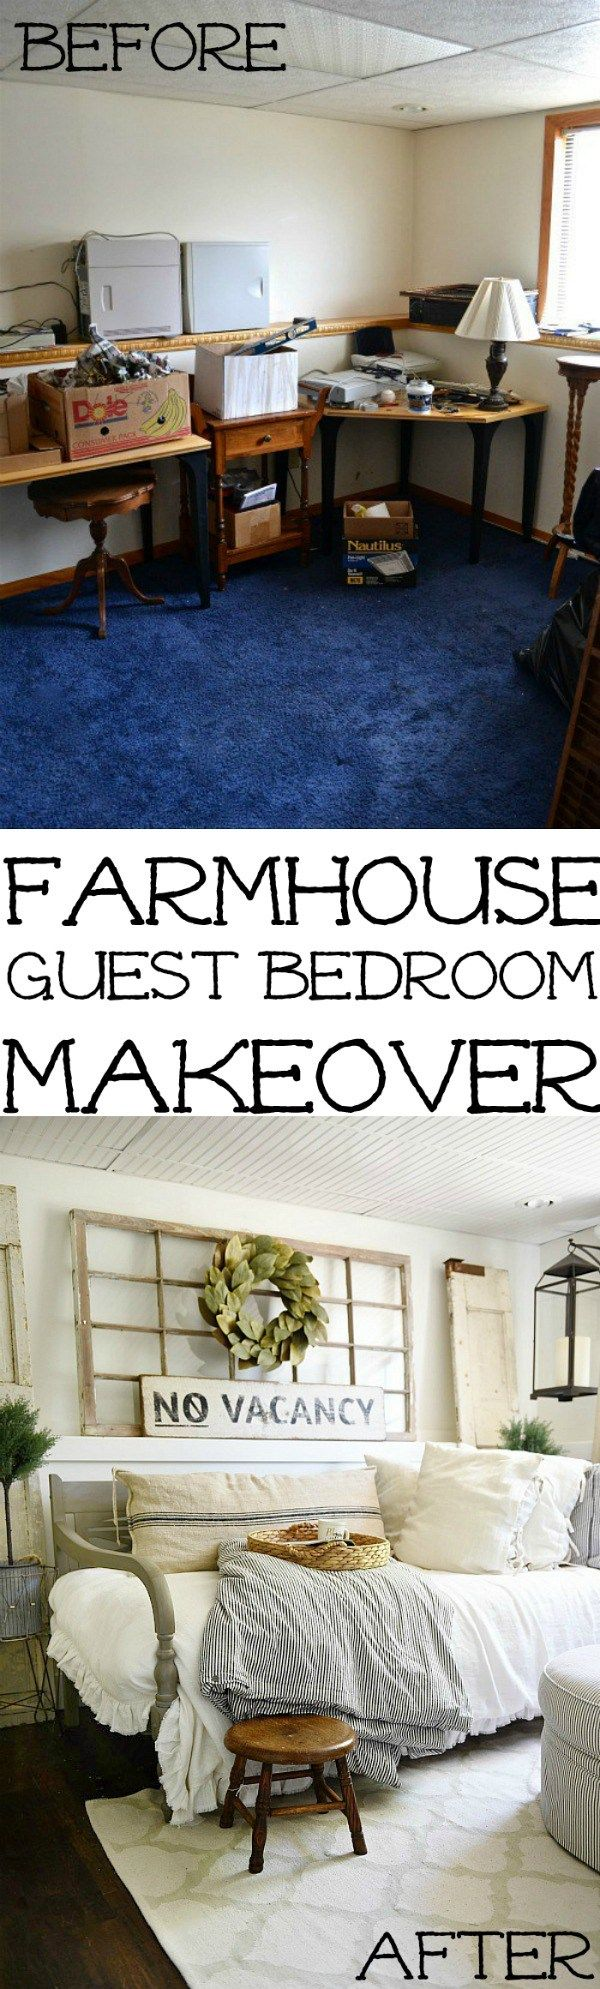 Farmhouse Guest Bedroom Makeover